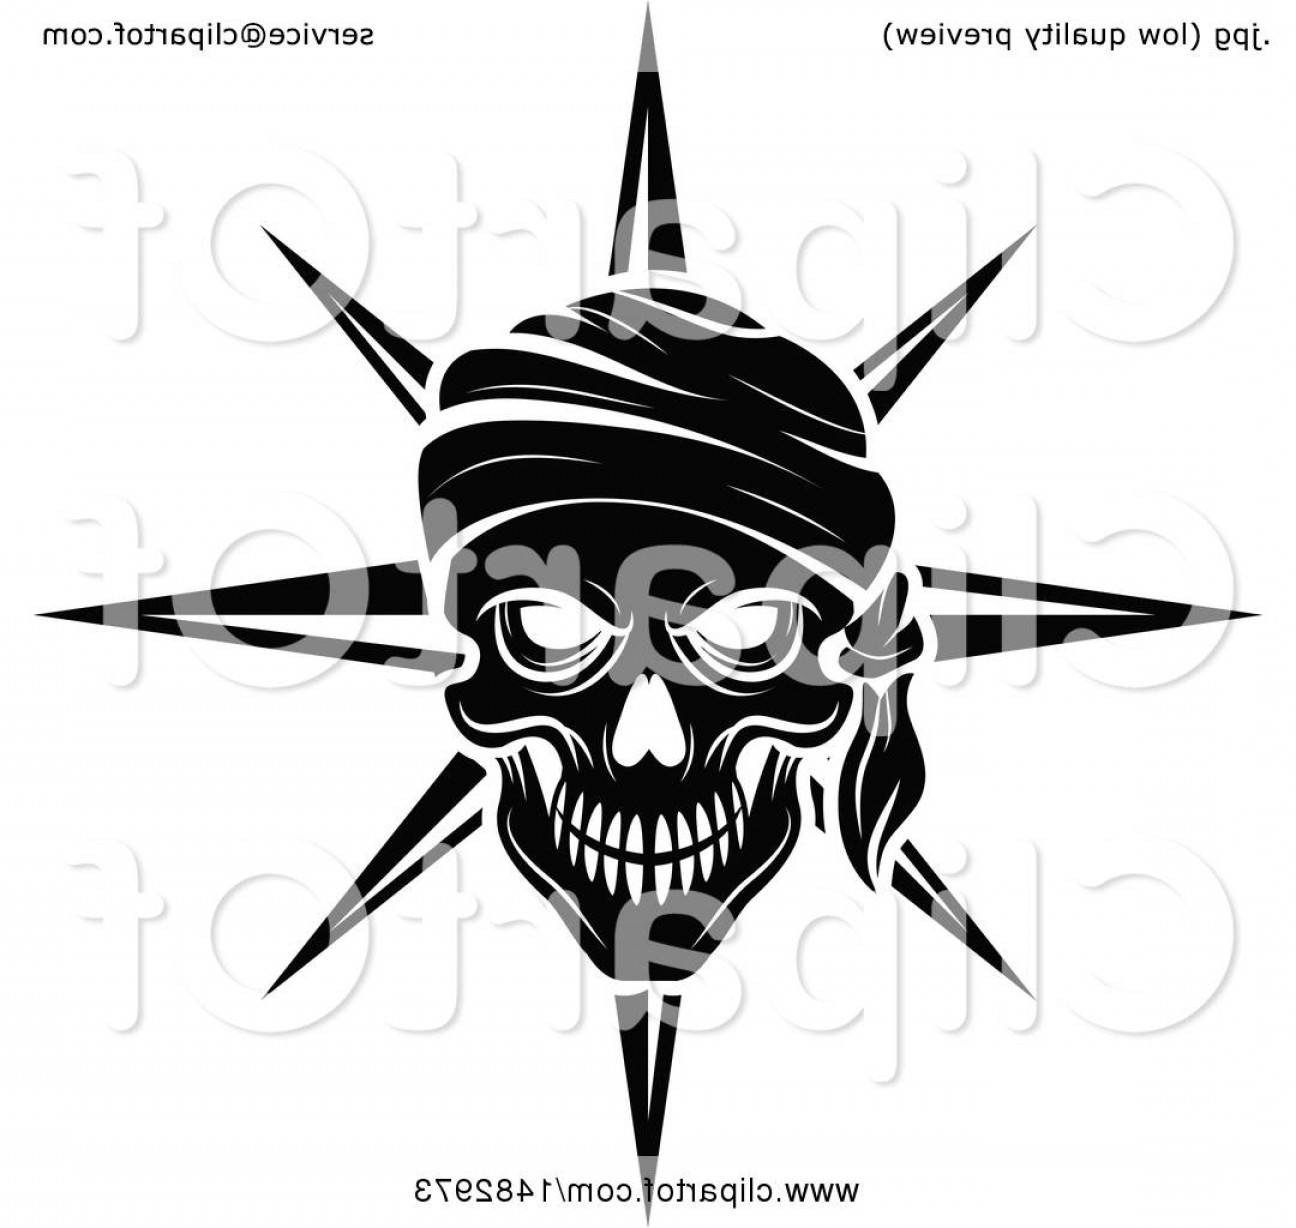 Harley -Davidson Skull Logo Vector: Black And White Pirate Skull And Compass Star